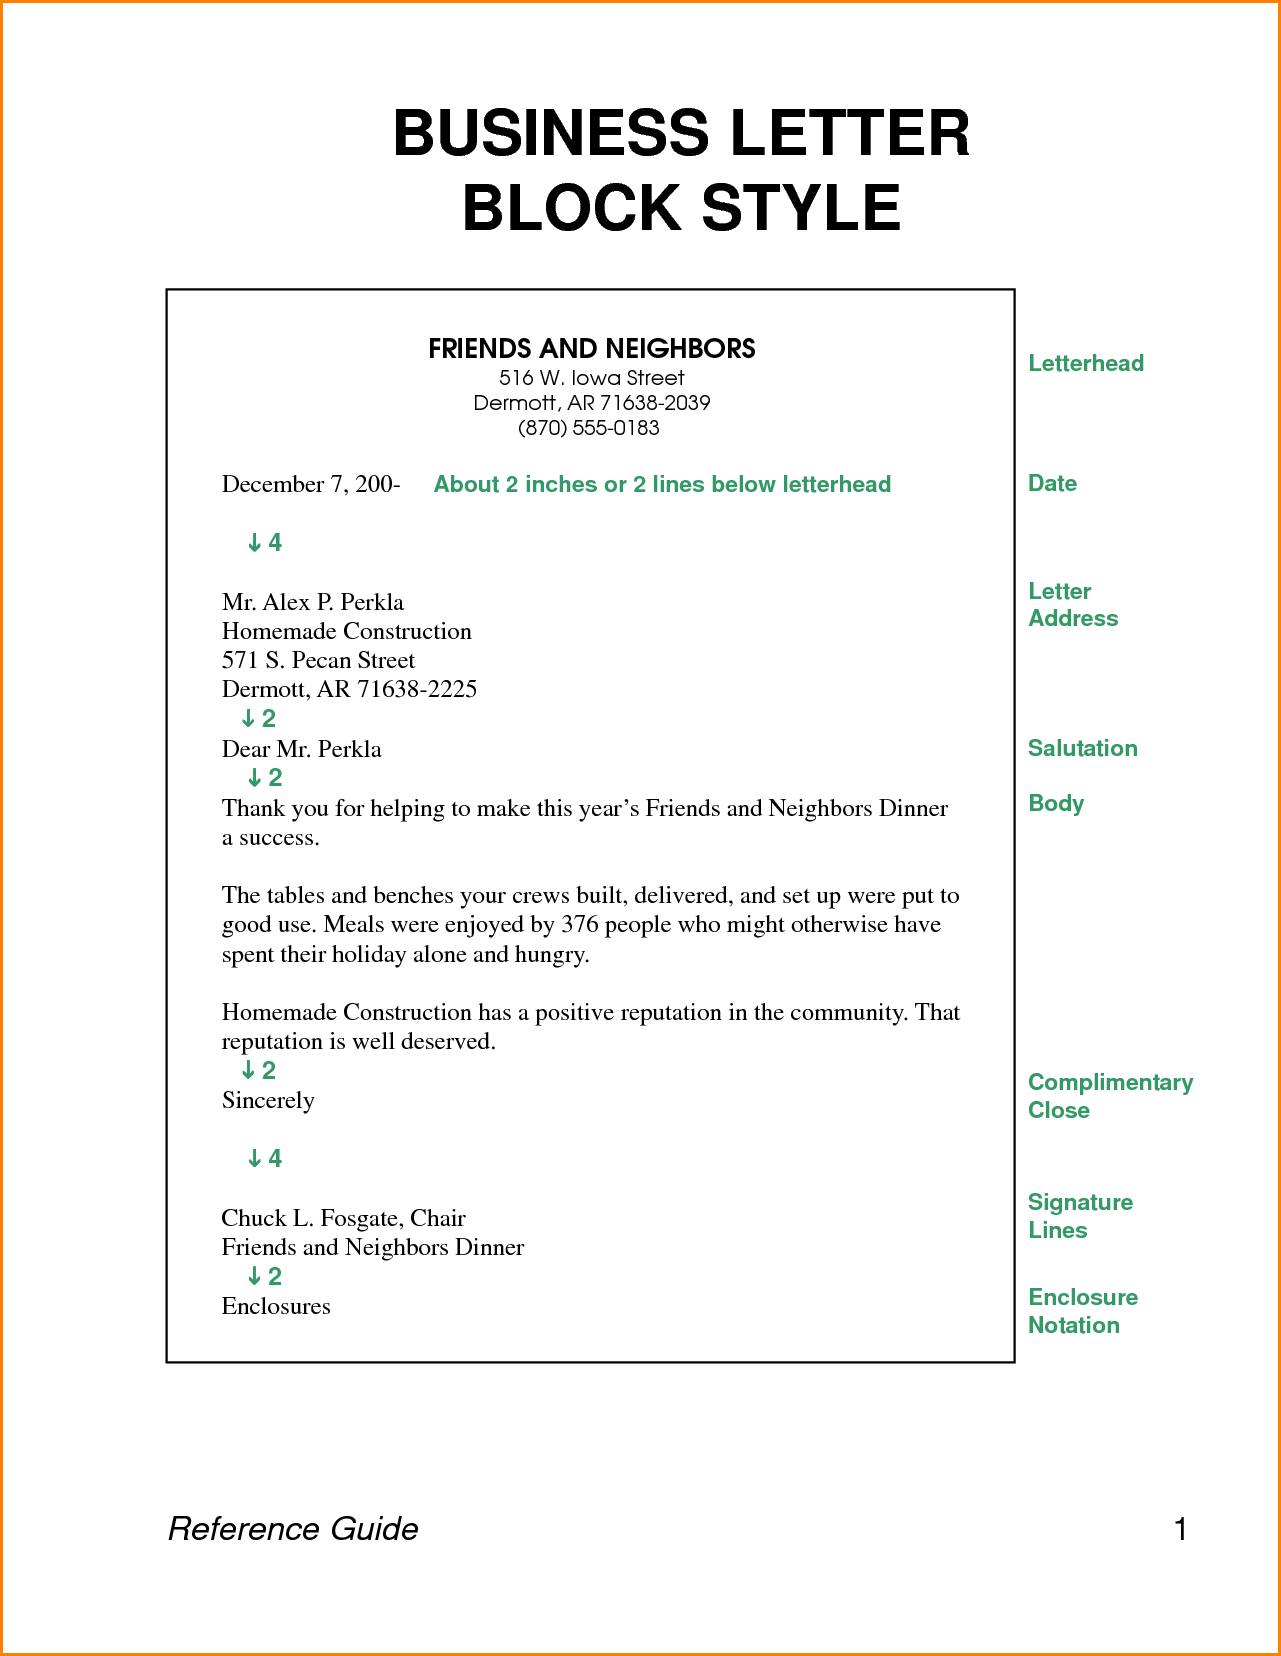 Business letter block style letters format download free documents business letter block style letters format download free documents pdf word flashek Image collections